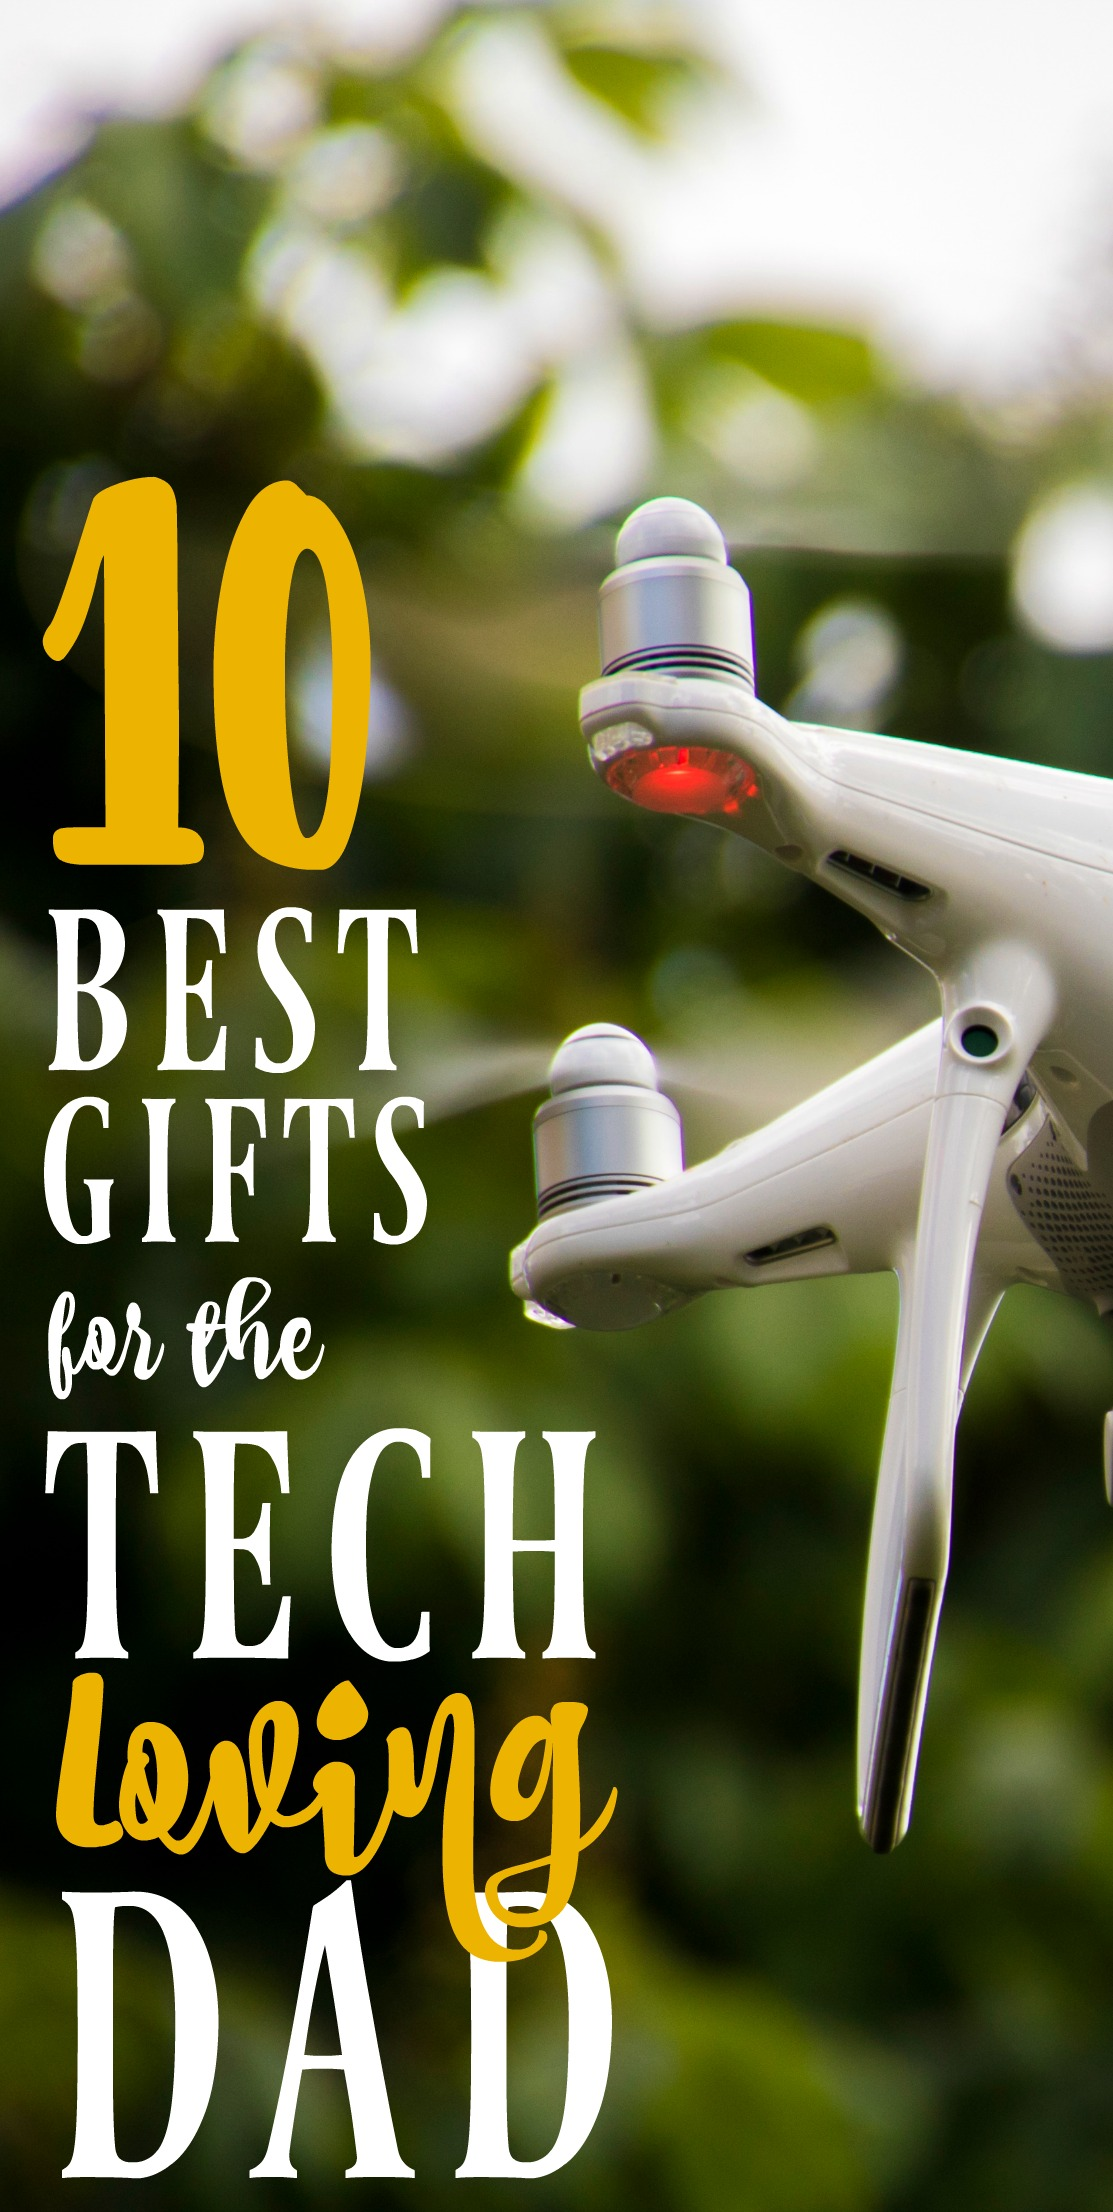 If you're looking for gift ideas for Father's Day, check out this list of tech gifts for dad!